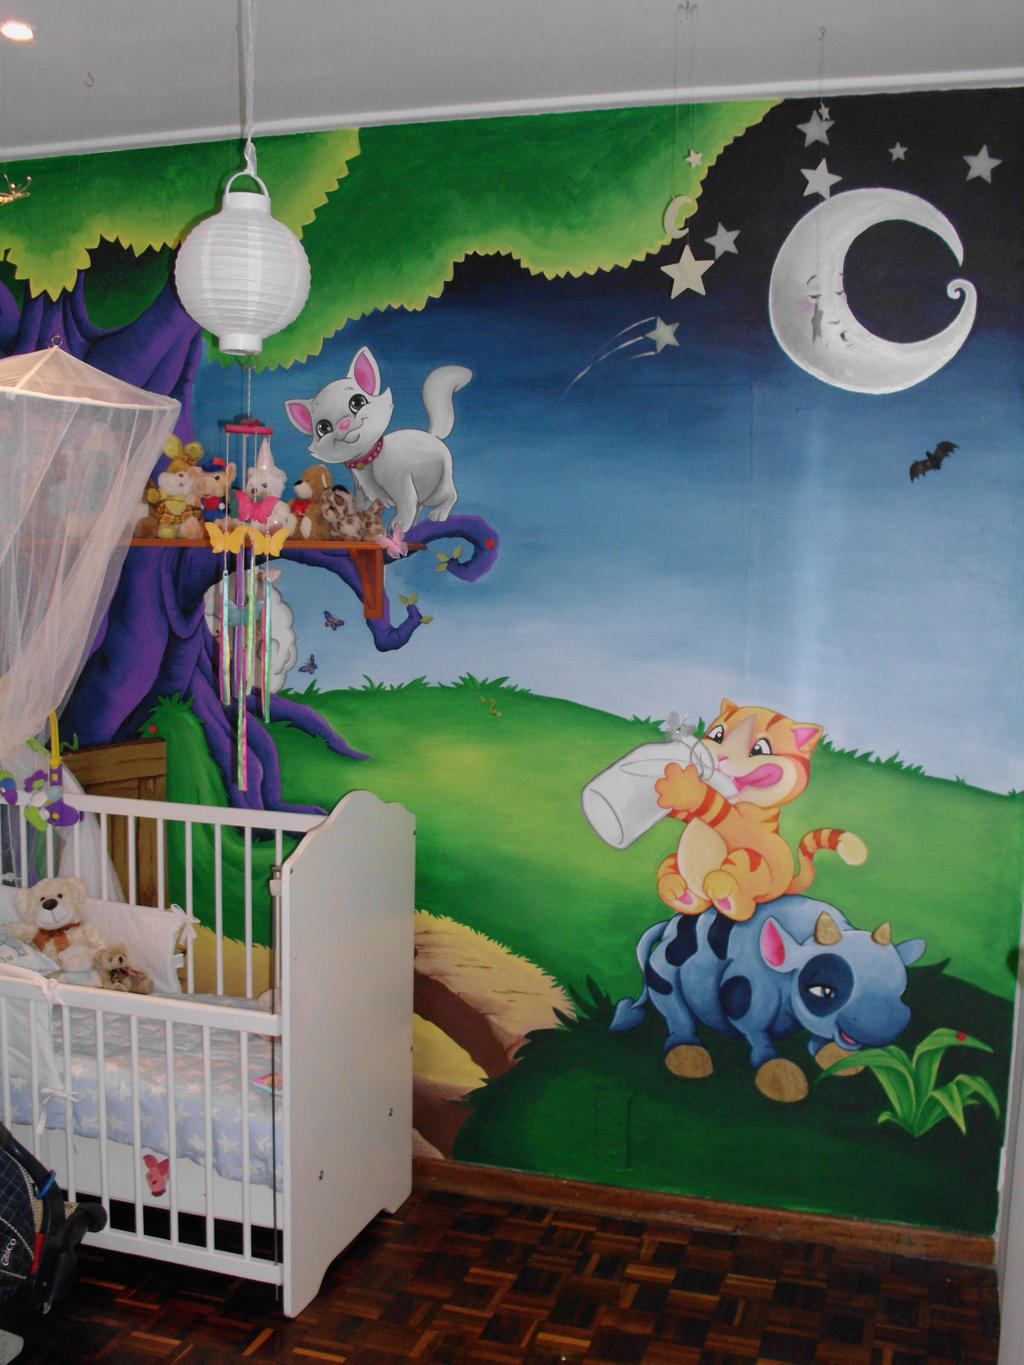 Baby room wall mural final by justinmain on deviantart for Baby room wall mural ideas